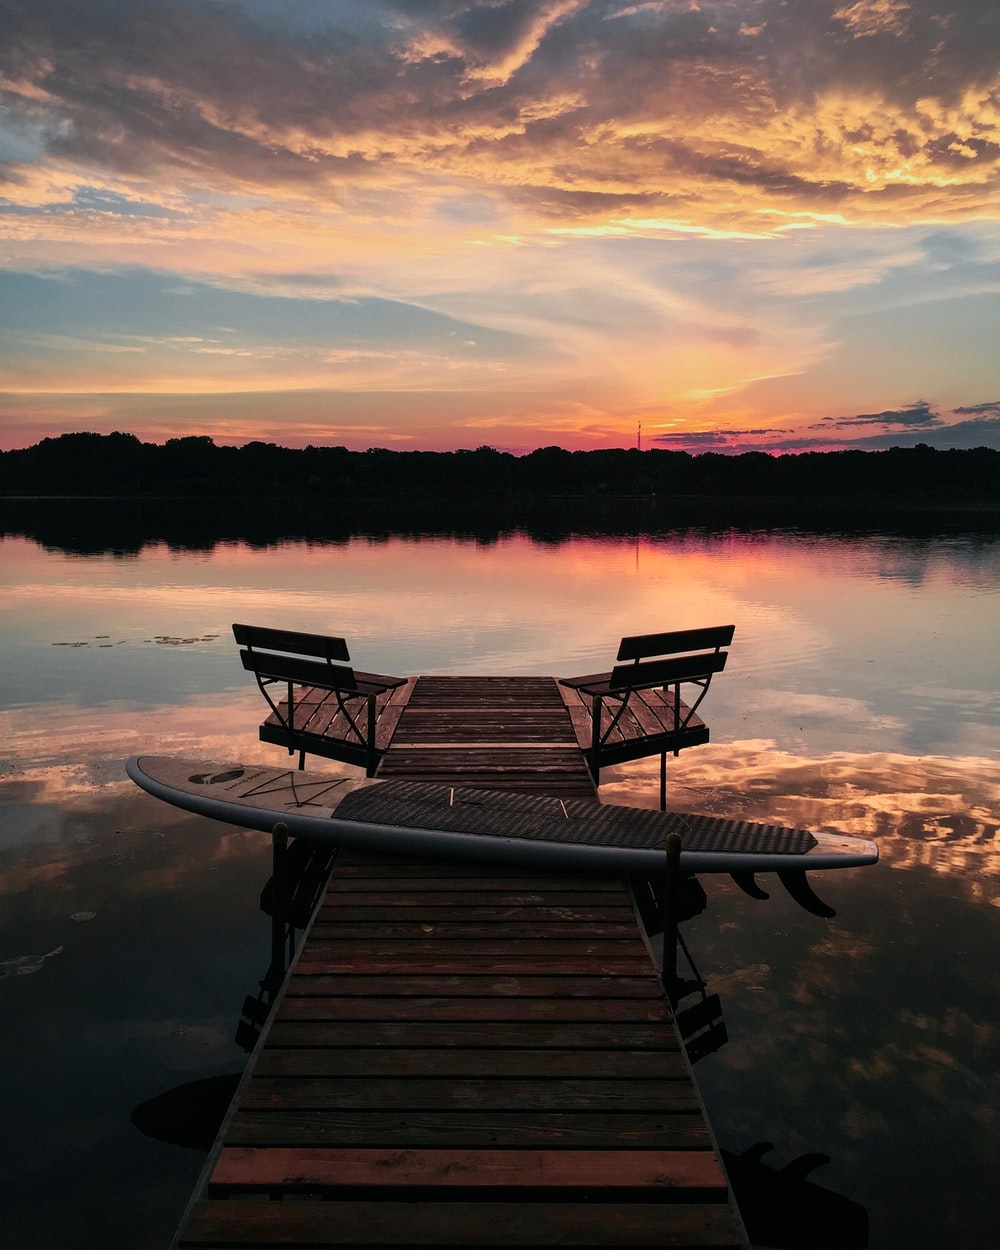 brown wooden bench on dock during sunset